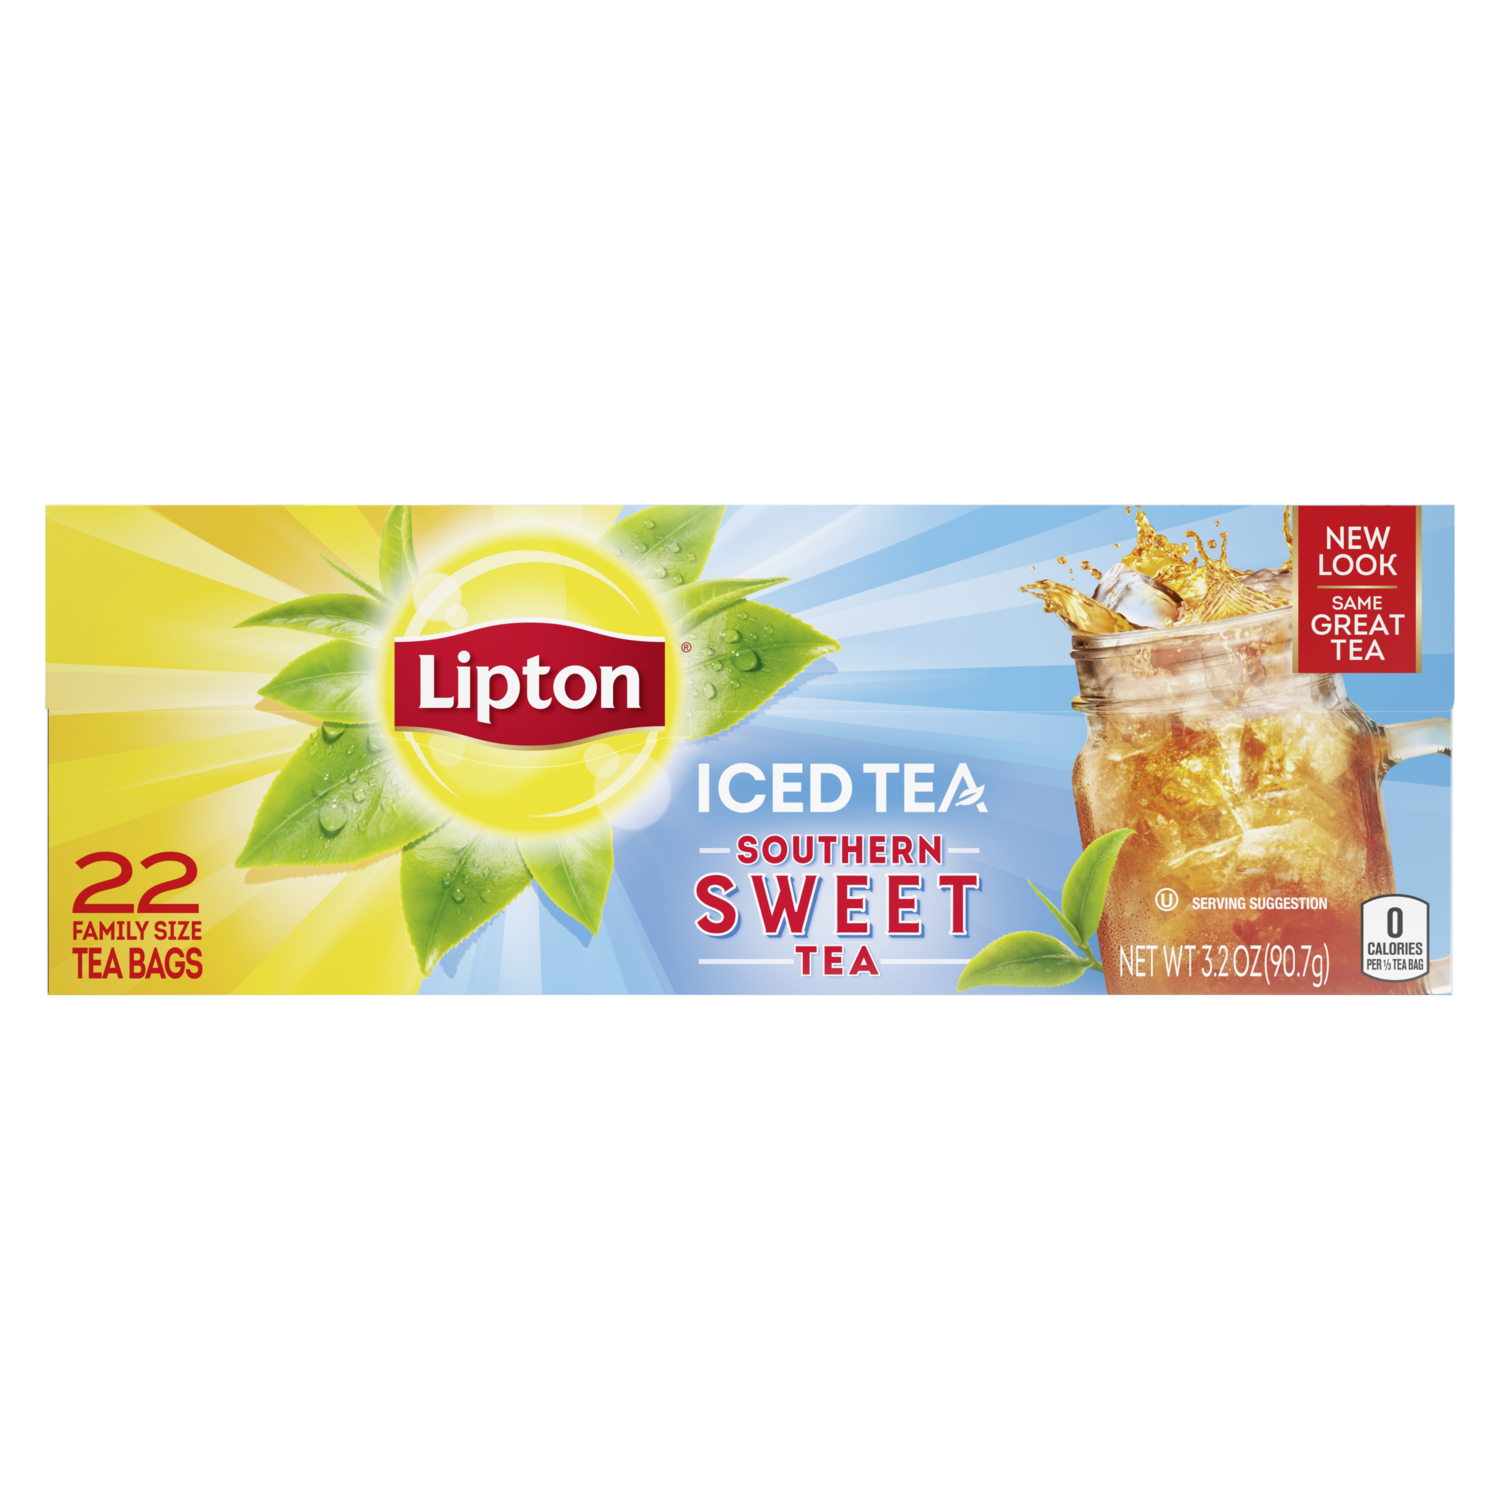 Iced Black Tea Family Size Tea Bags Lipton